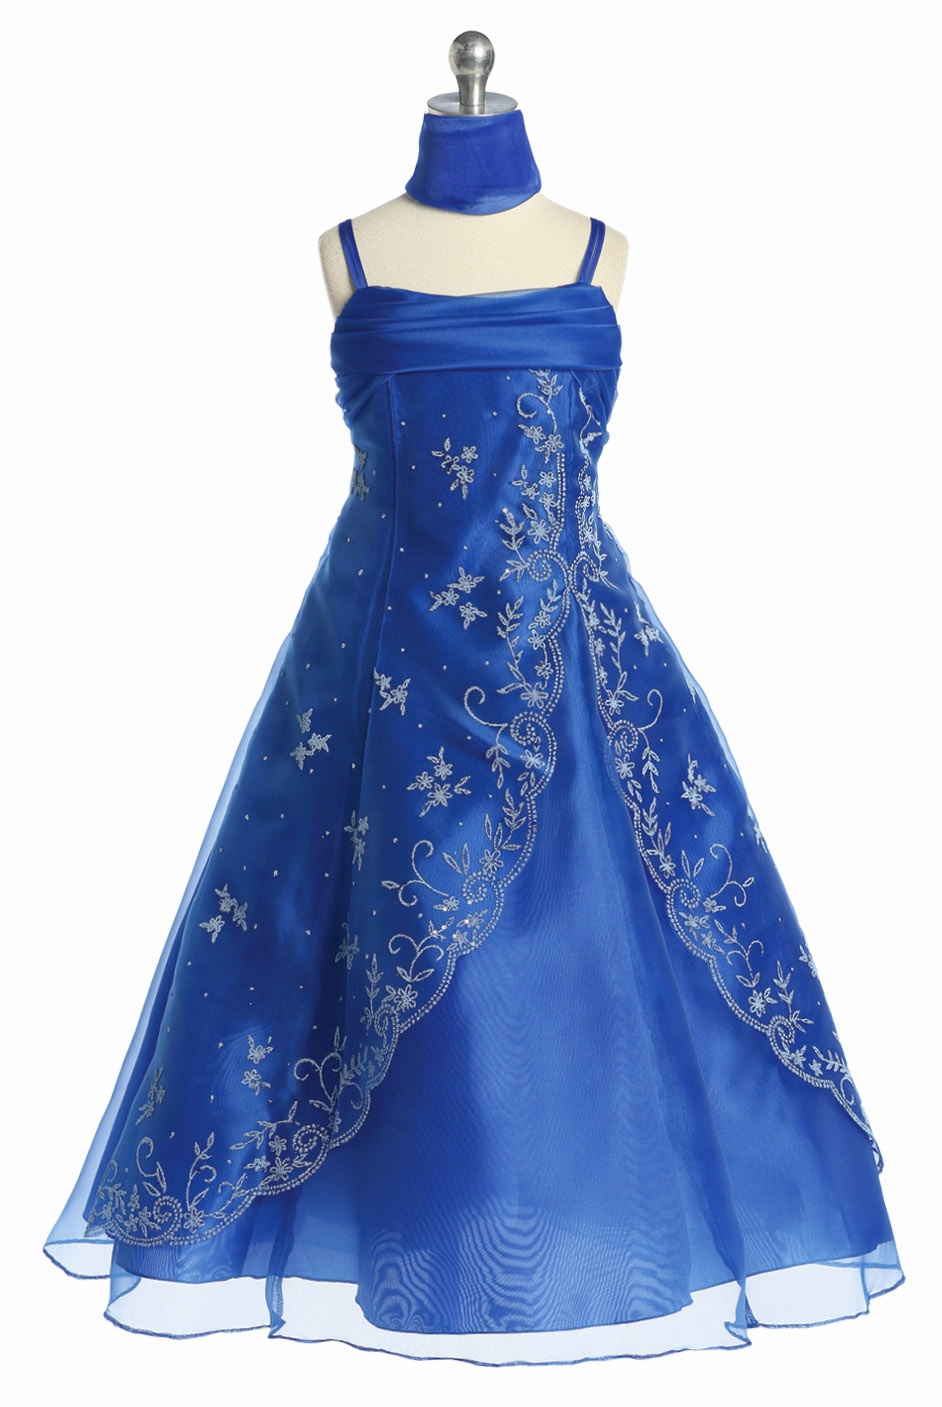 Blue- Turquise &amp- Aqua Flower Girl Dresses - PinkPrincess.com